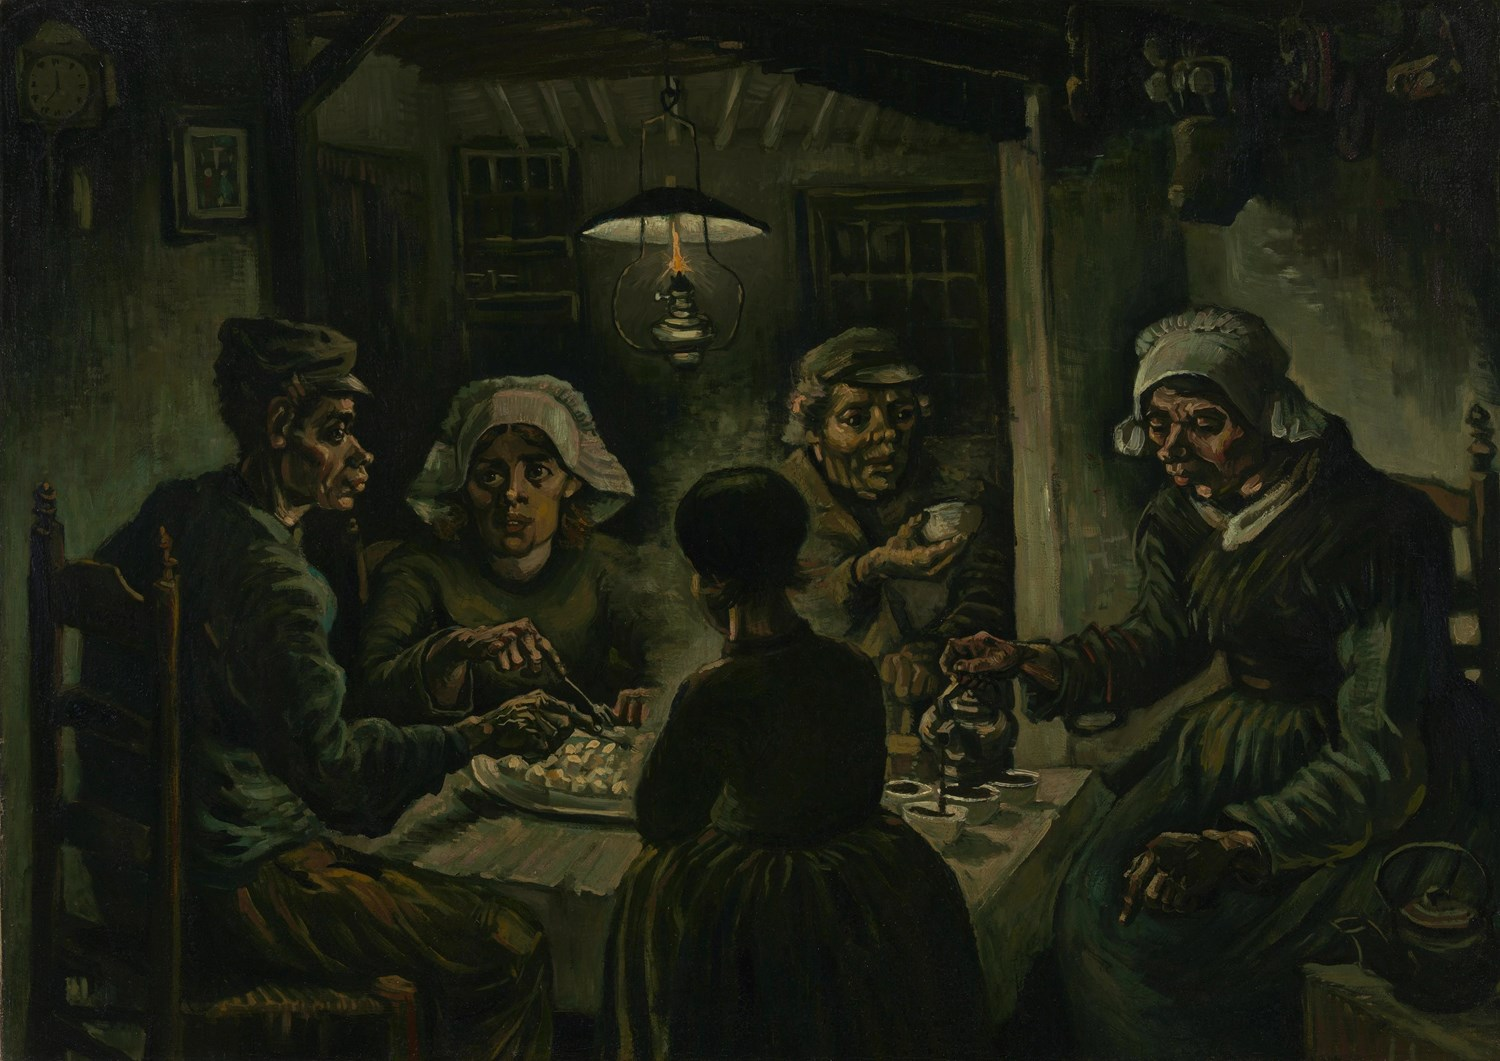 'The potato eaters' is a well-known work by Vincent van Gogh | Brabant Brand Box